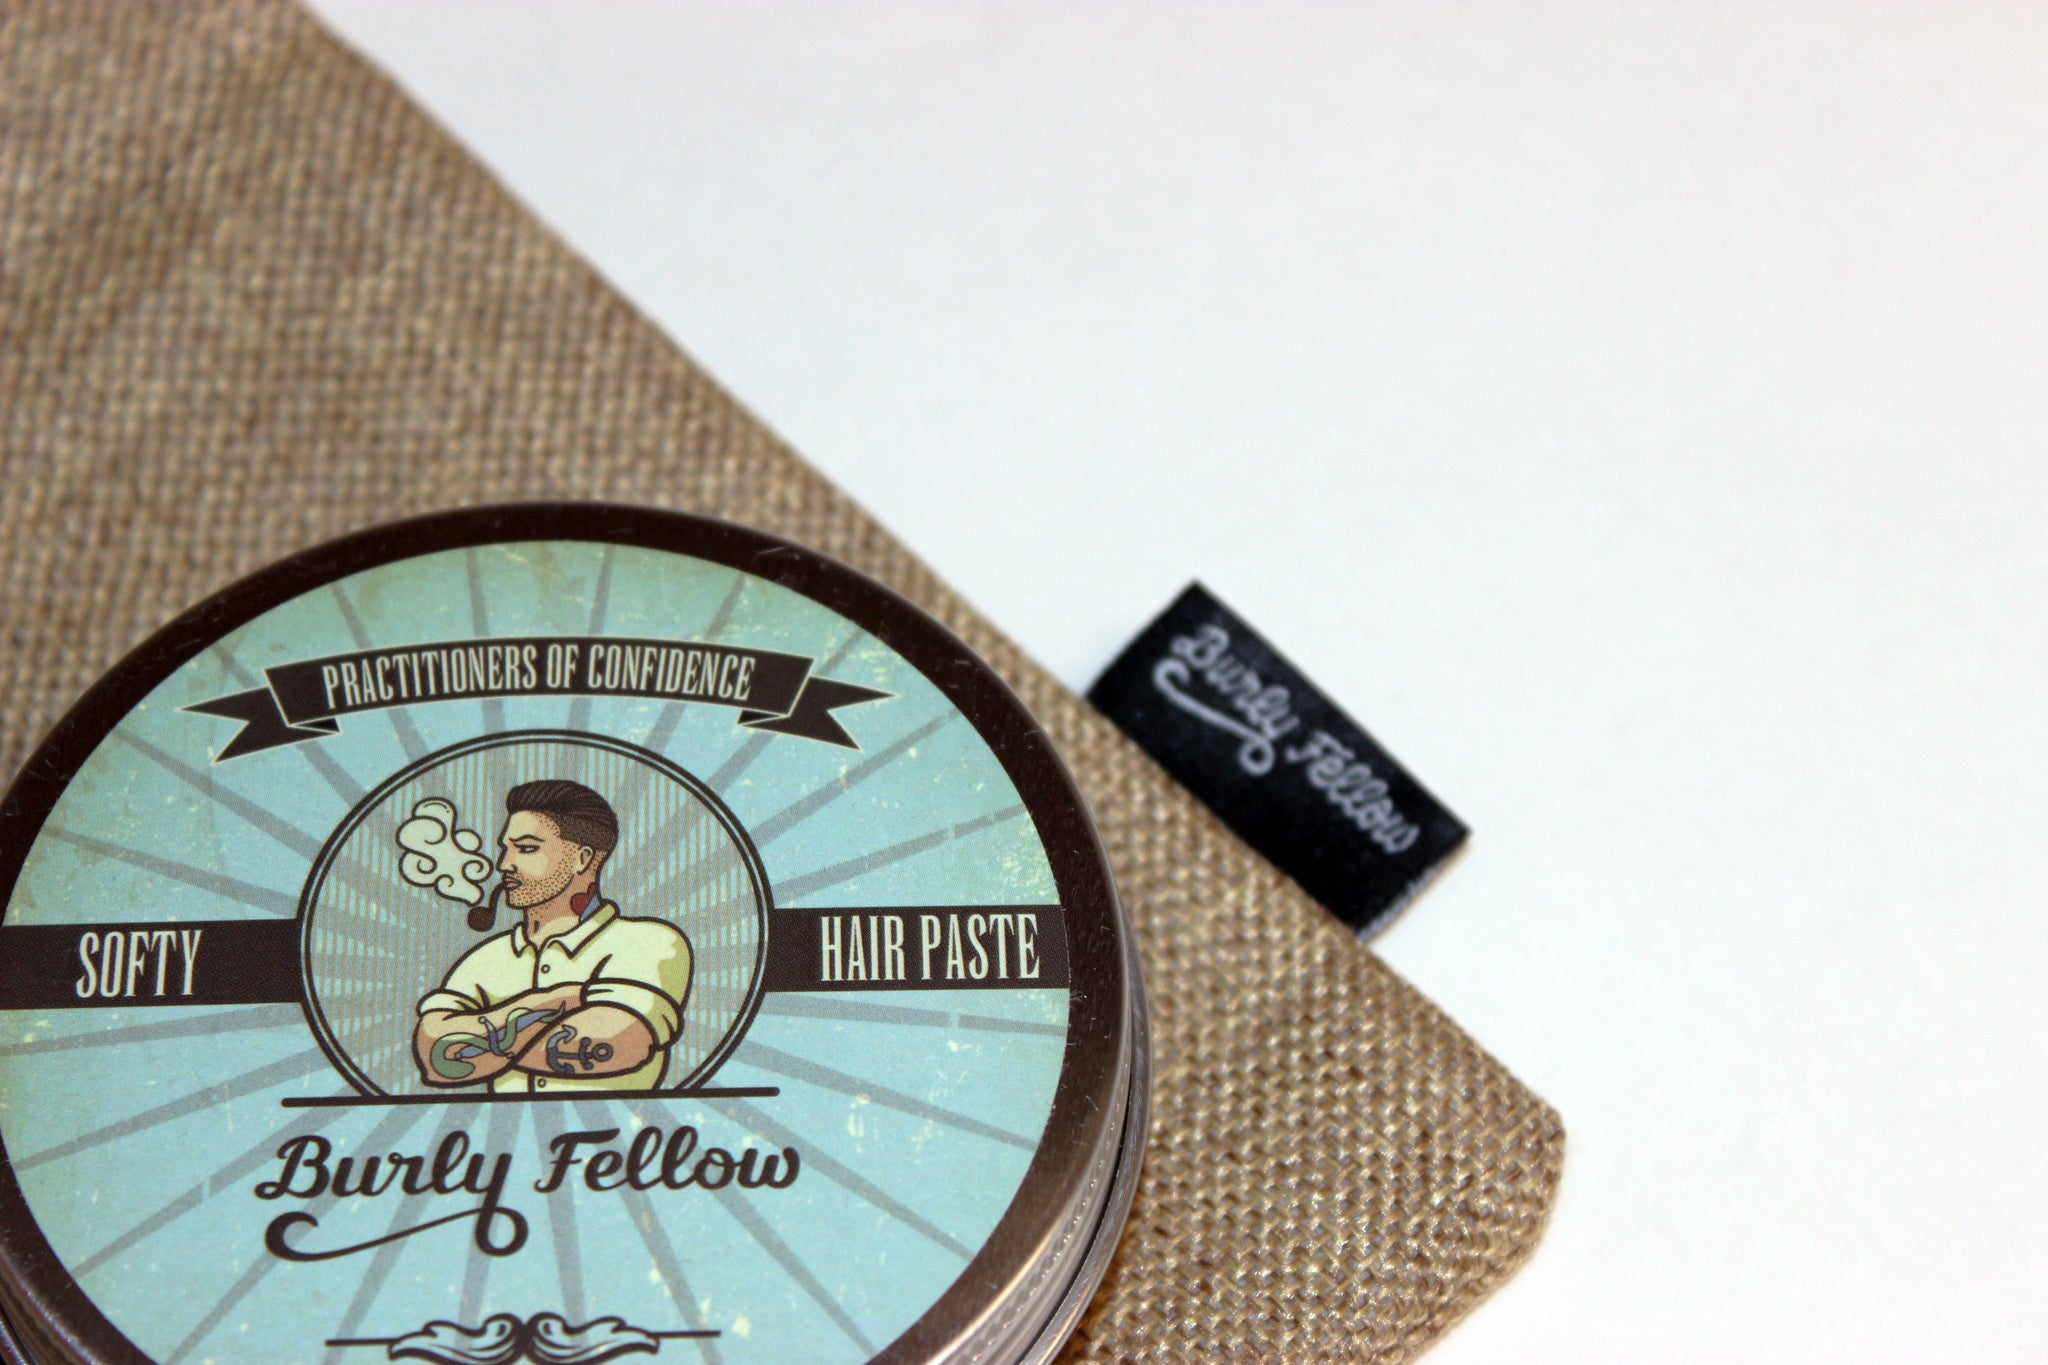 Burly Fellow softy pomade